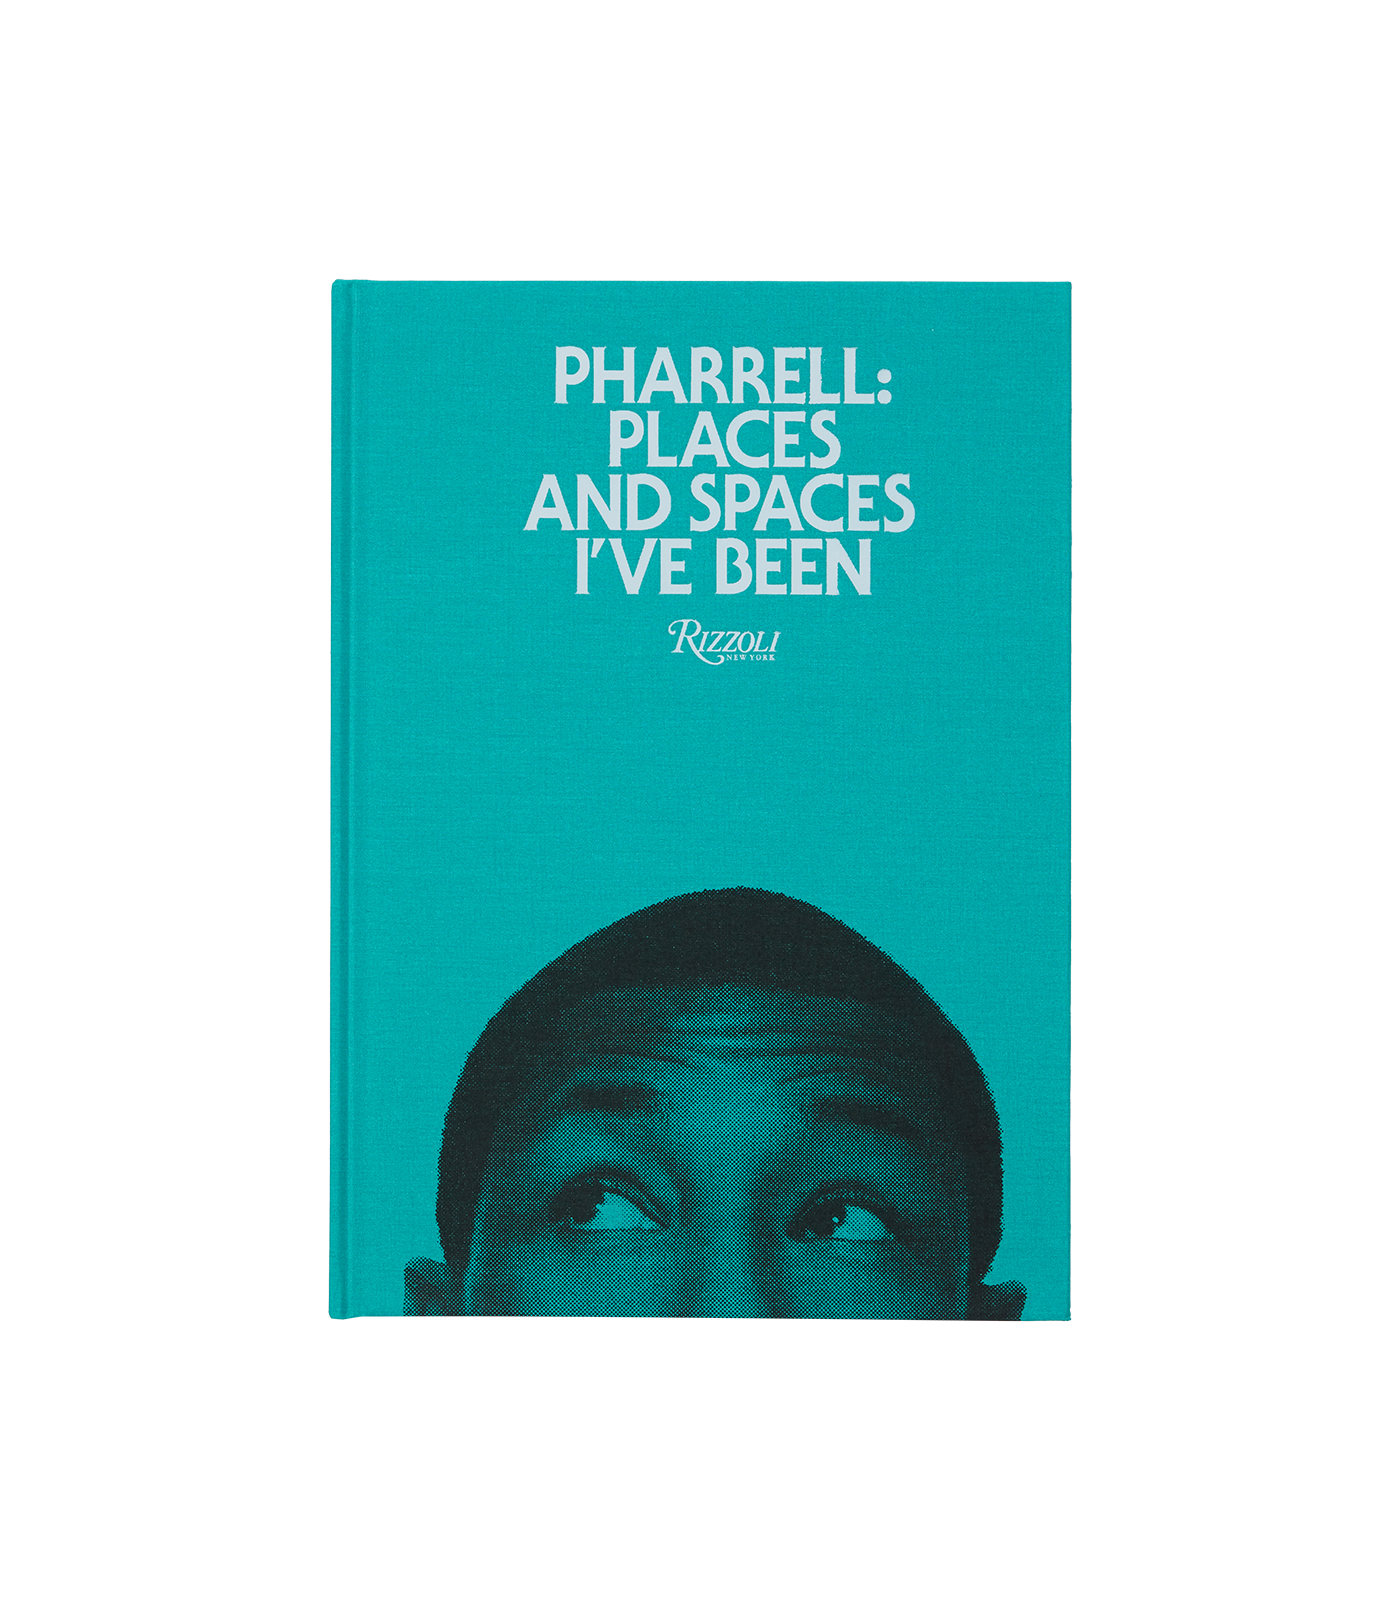 Pharrell: Places and Spaces I've Been Book - Green